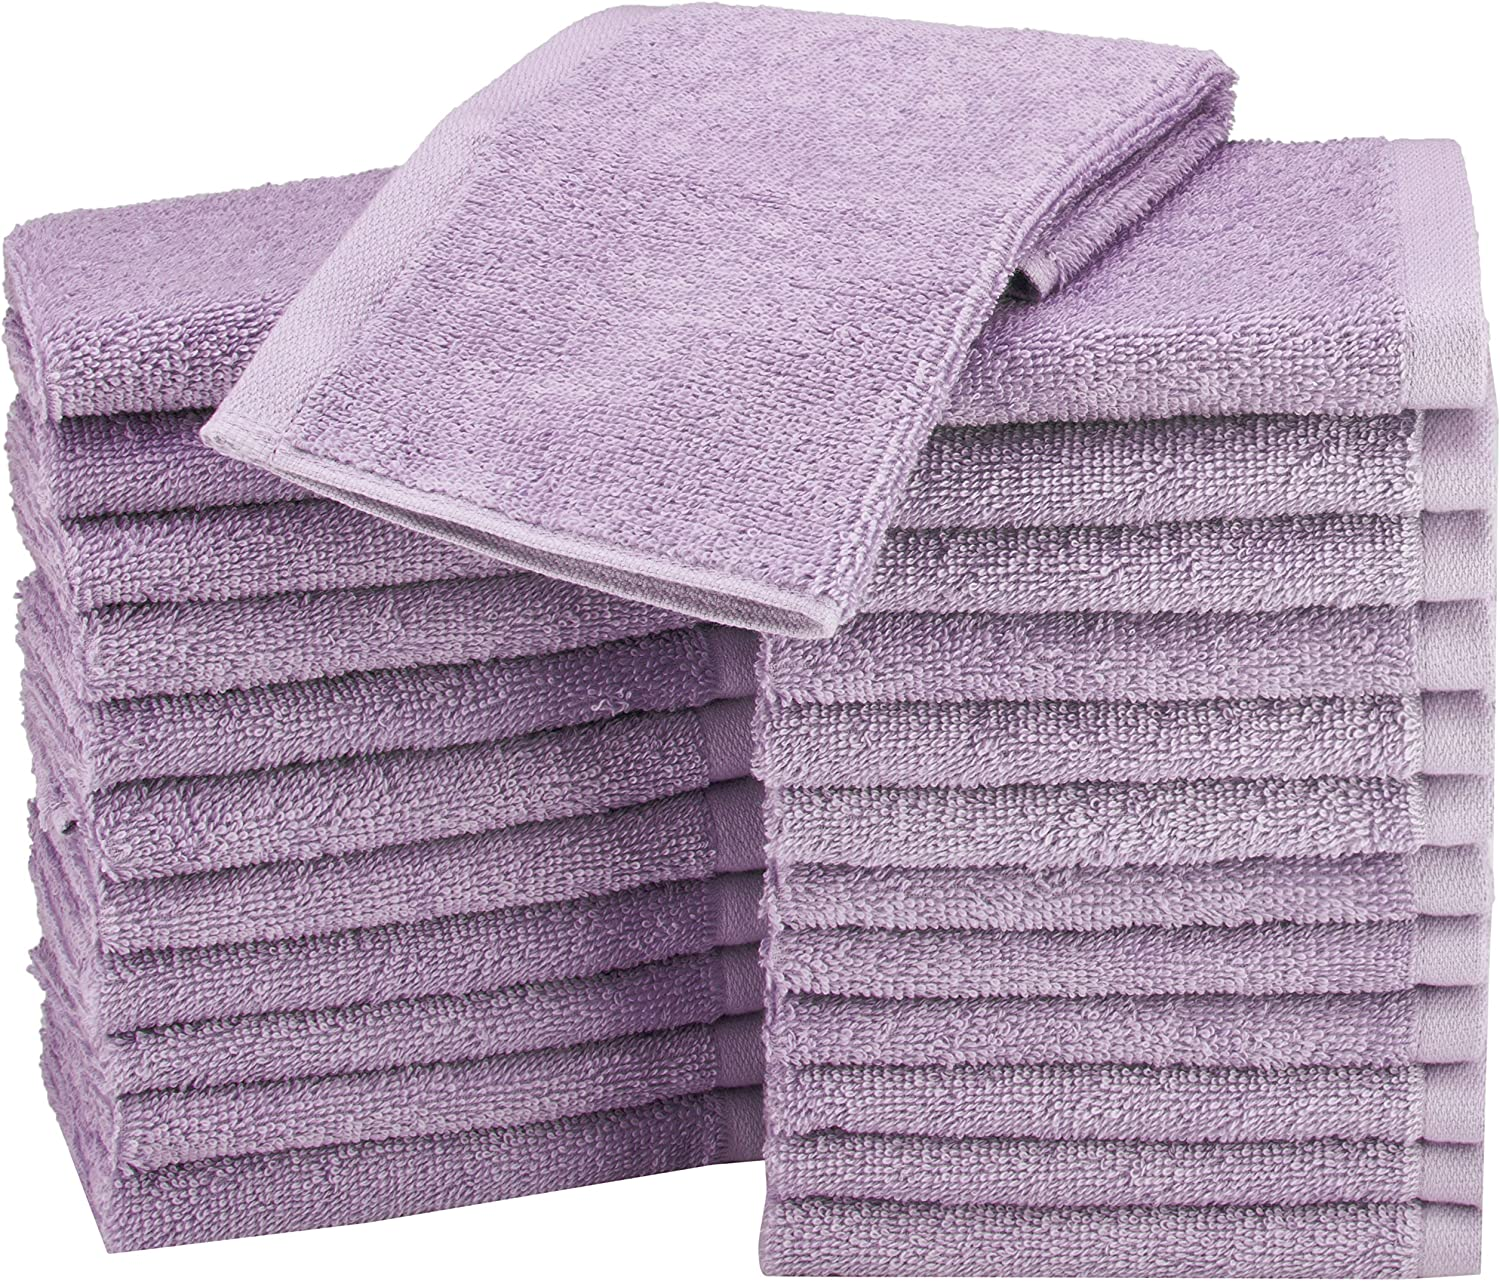 face Cloth pack of 4 or 10-BRAND NEW Lilac Flannel